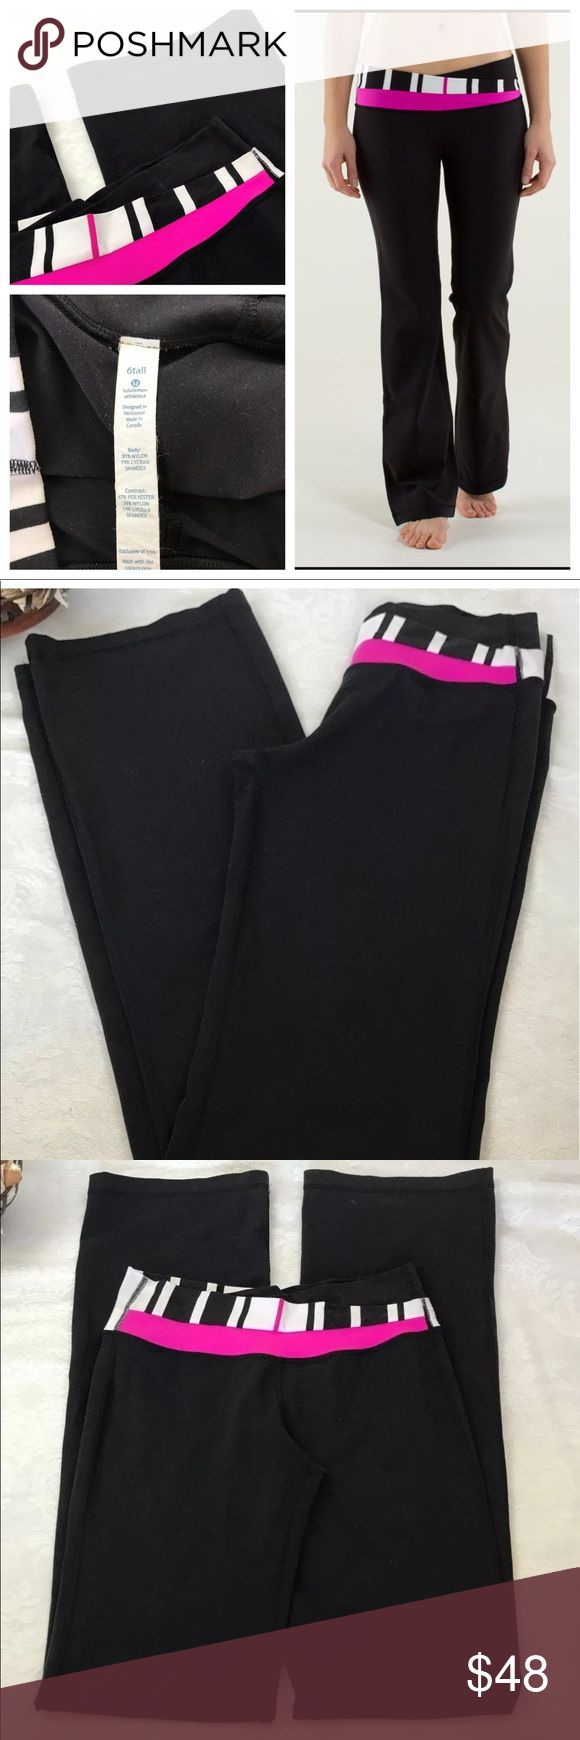 Lululemon Astro Pant 6 Tall Black Traverse Gently Used Lululemon Astro Pant 6 Tall Black Traverse Stripes Paris Perfection Waist Band is Striped with Black, White and Pink Detail  Waist can be worn up high or folded over   Waist: 10in.  Rise: 6in.  Length: 26in. Slight piling nothing major  Stock BB14.2 lululemon athletica Pants Track Pants & Joggers